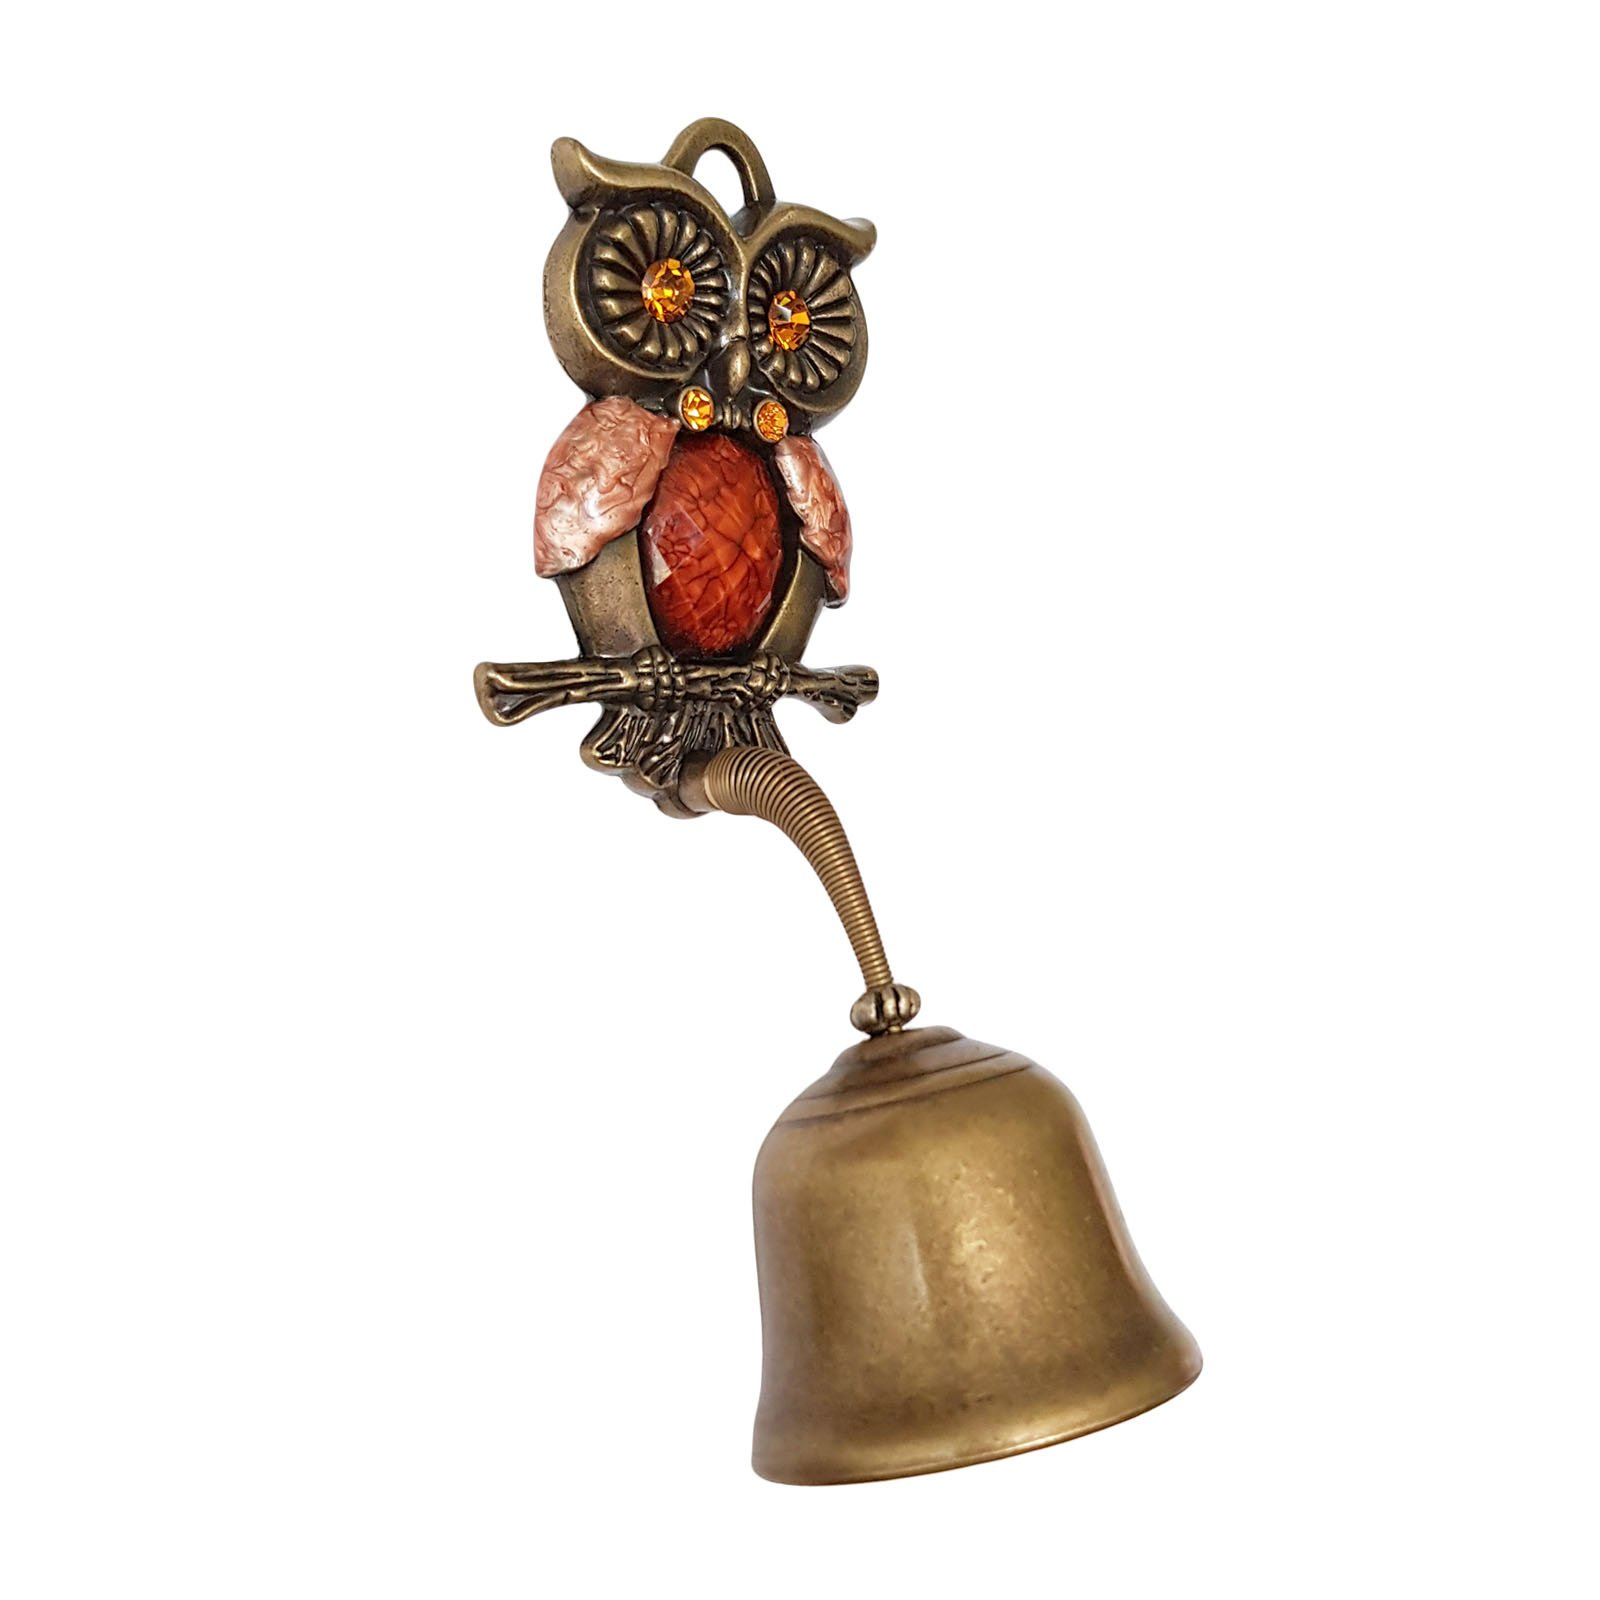 Owl Springy Shopkeepers Bell Entrance Alert Chime Compact & Lightweight Unique Design Home Decoration Doorbell A-Type (Orange) by YG-1 (Image #2)